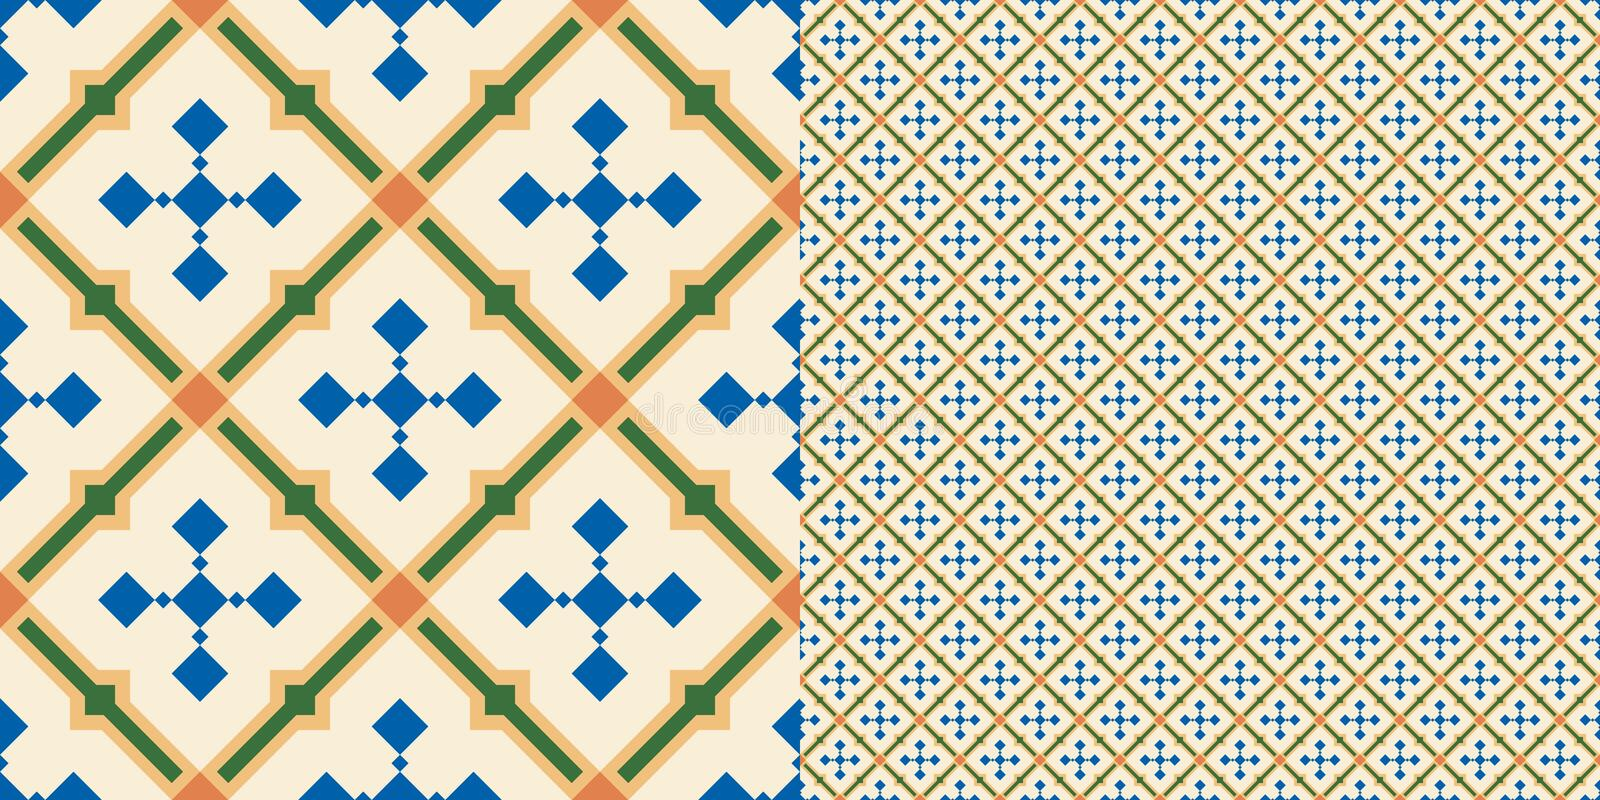 Download Abstract Symmetrical Design Stock Photo - Image: 23509550